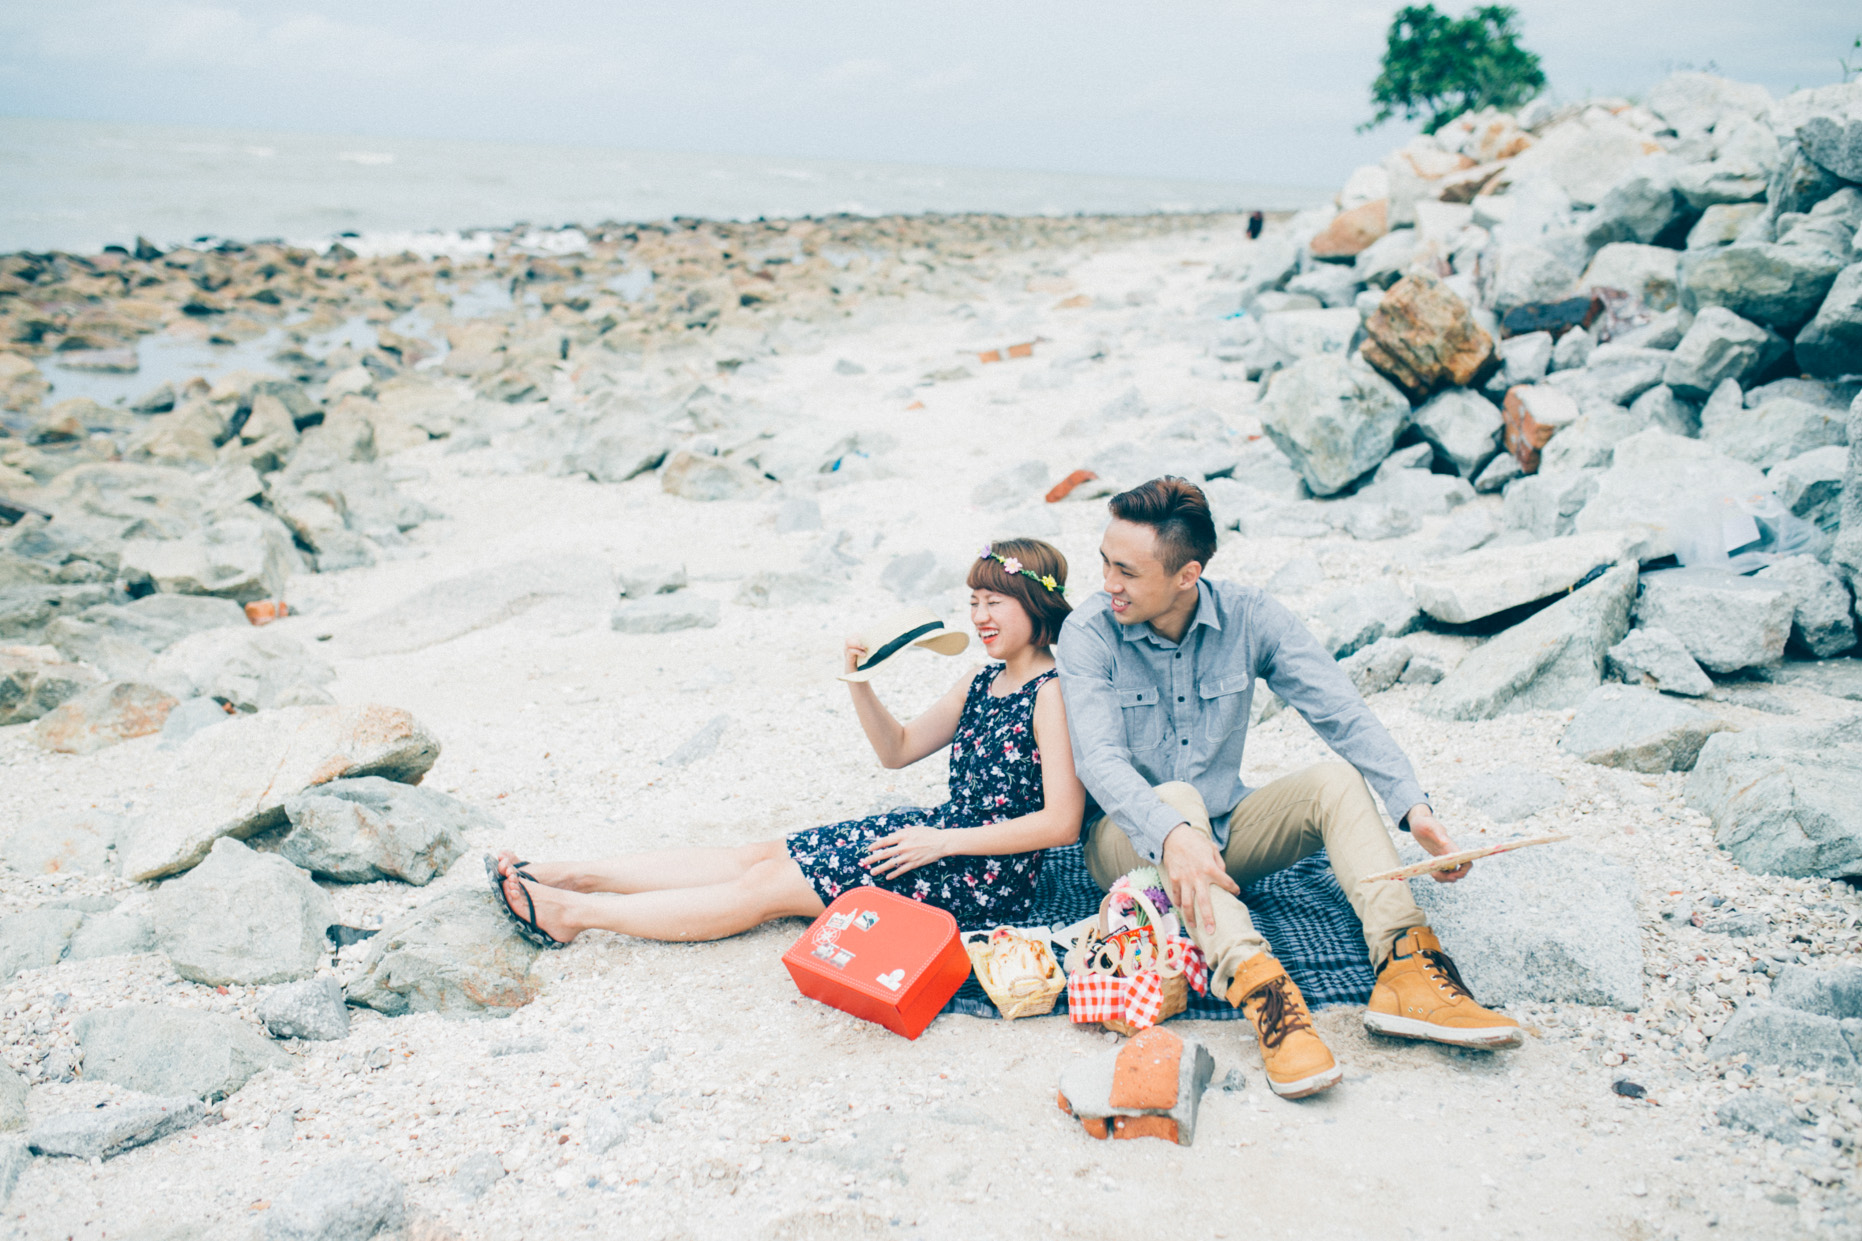 32-hellojanelee-singapore-malaysia-wedding-photographer-prewedding-carrie-sekinchan